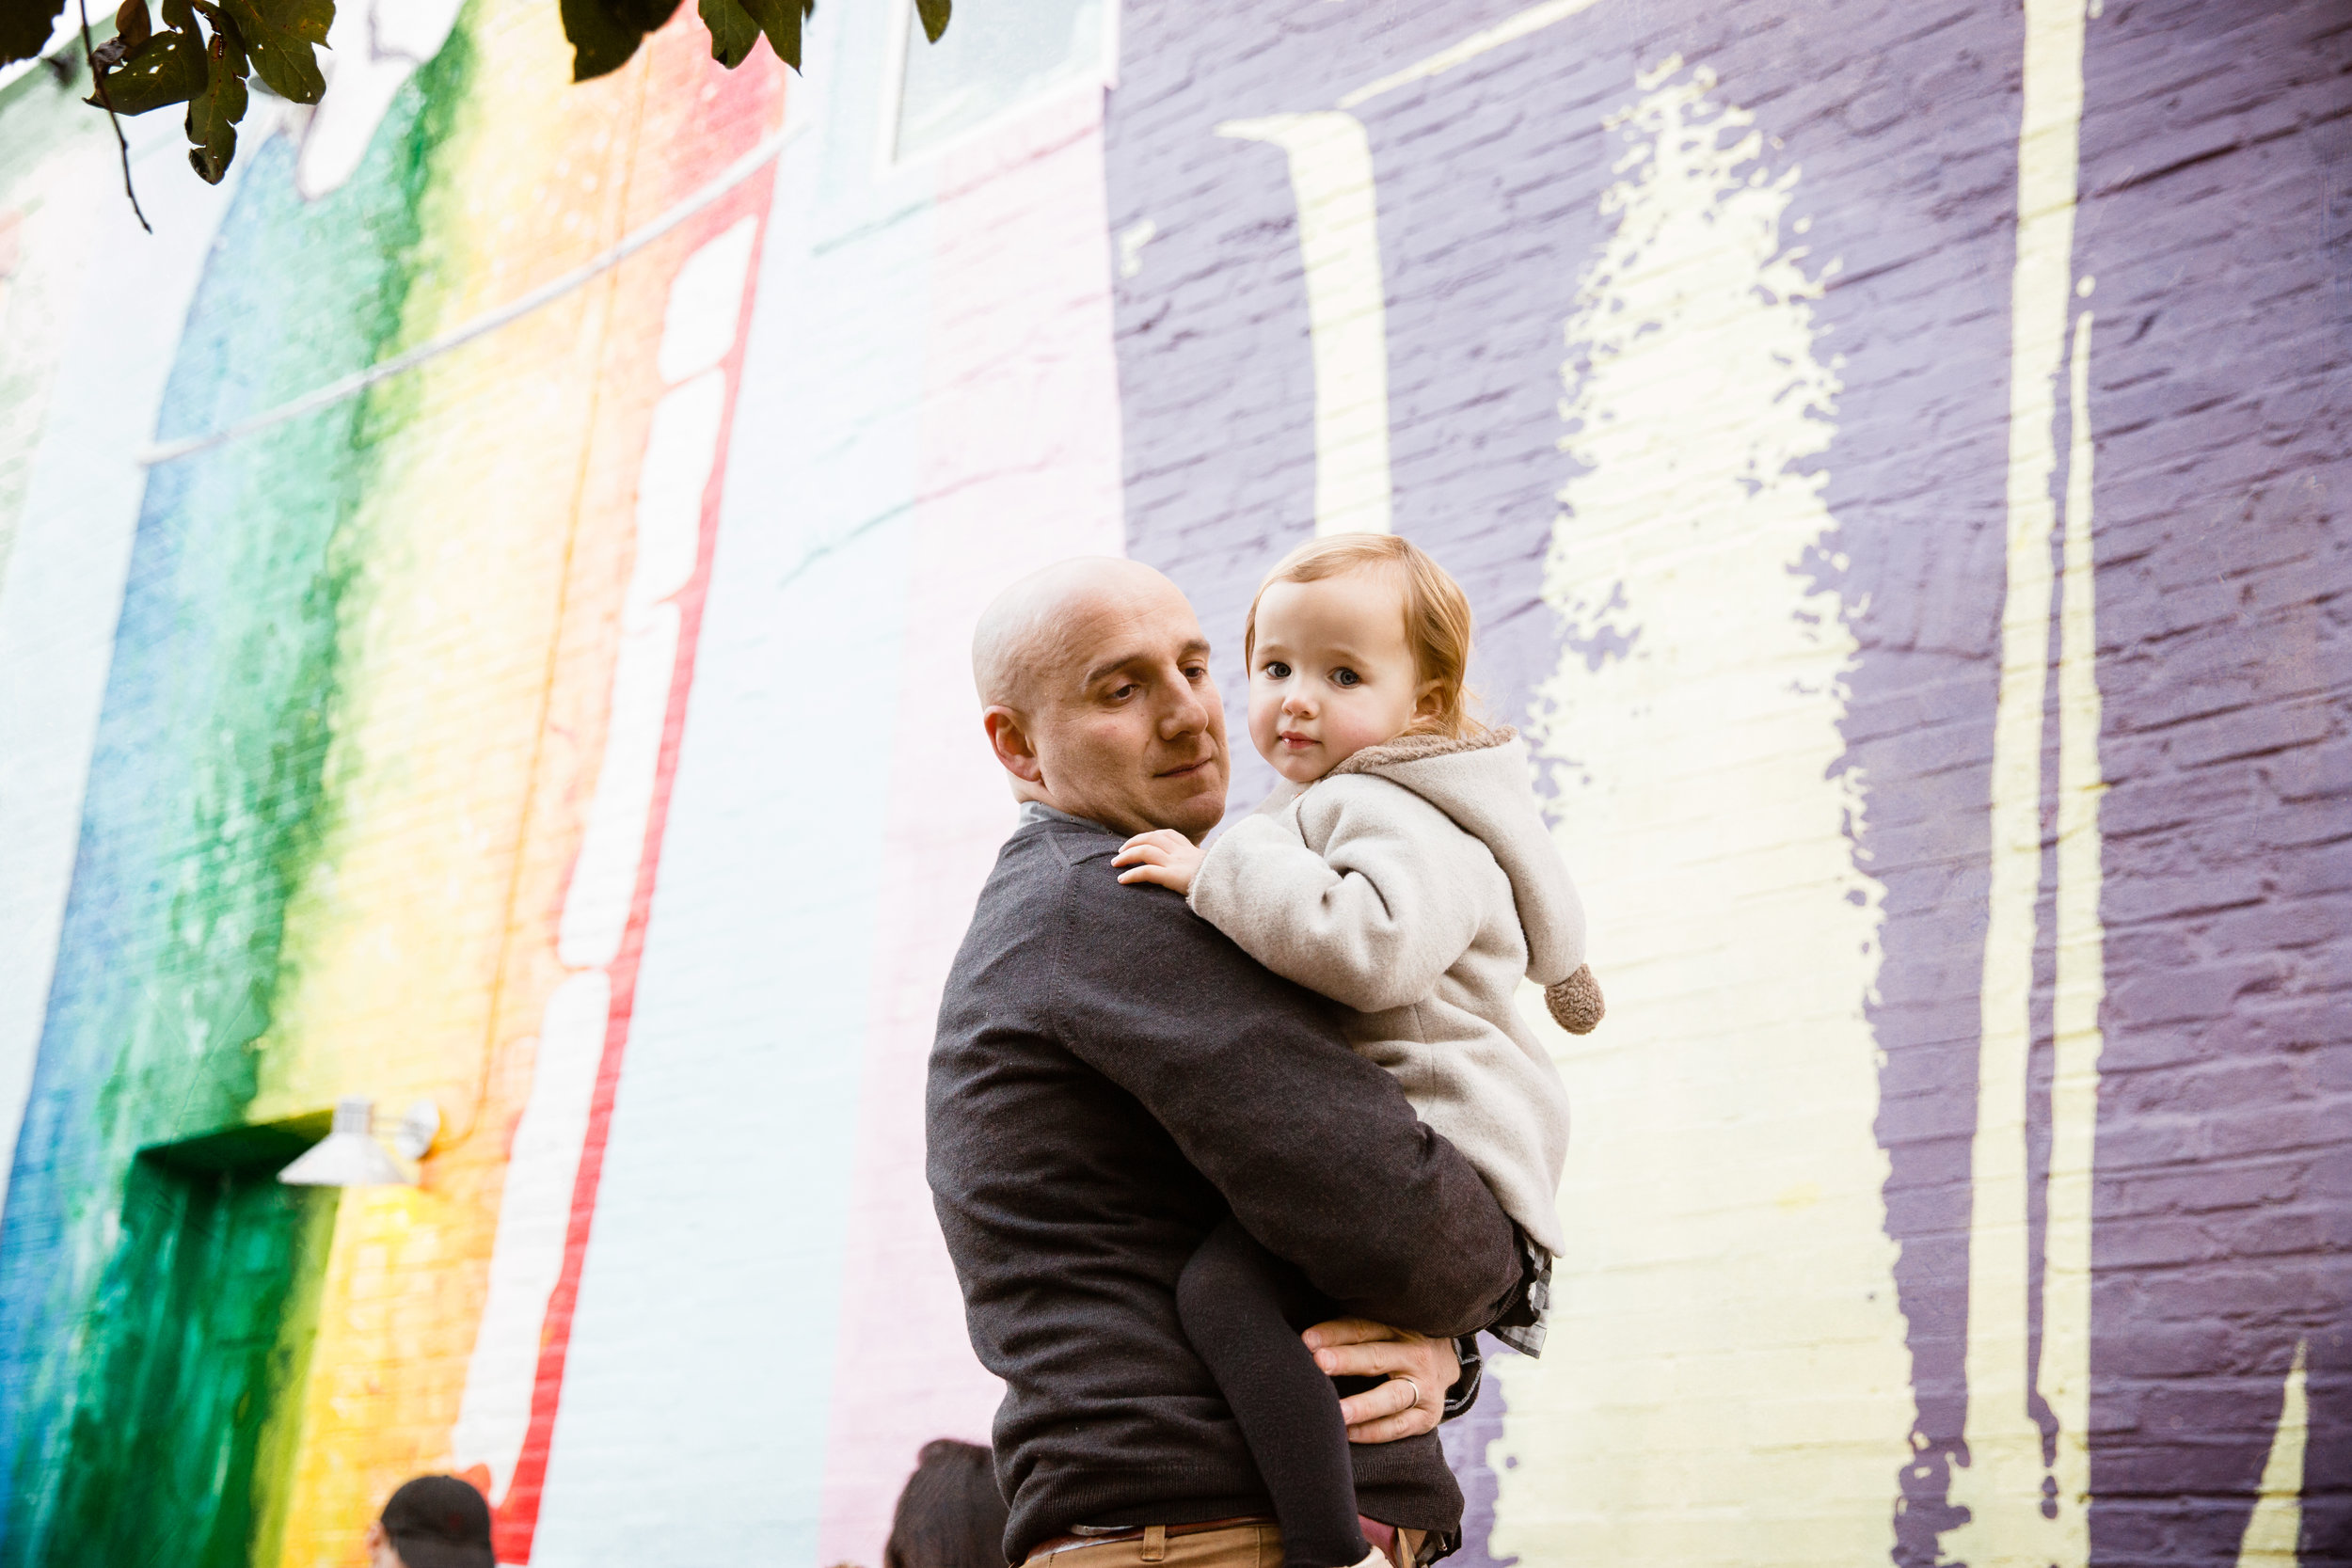 dad holds daughter in front of ice cream shop mural on the streets in the city